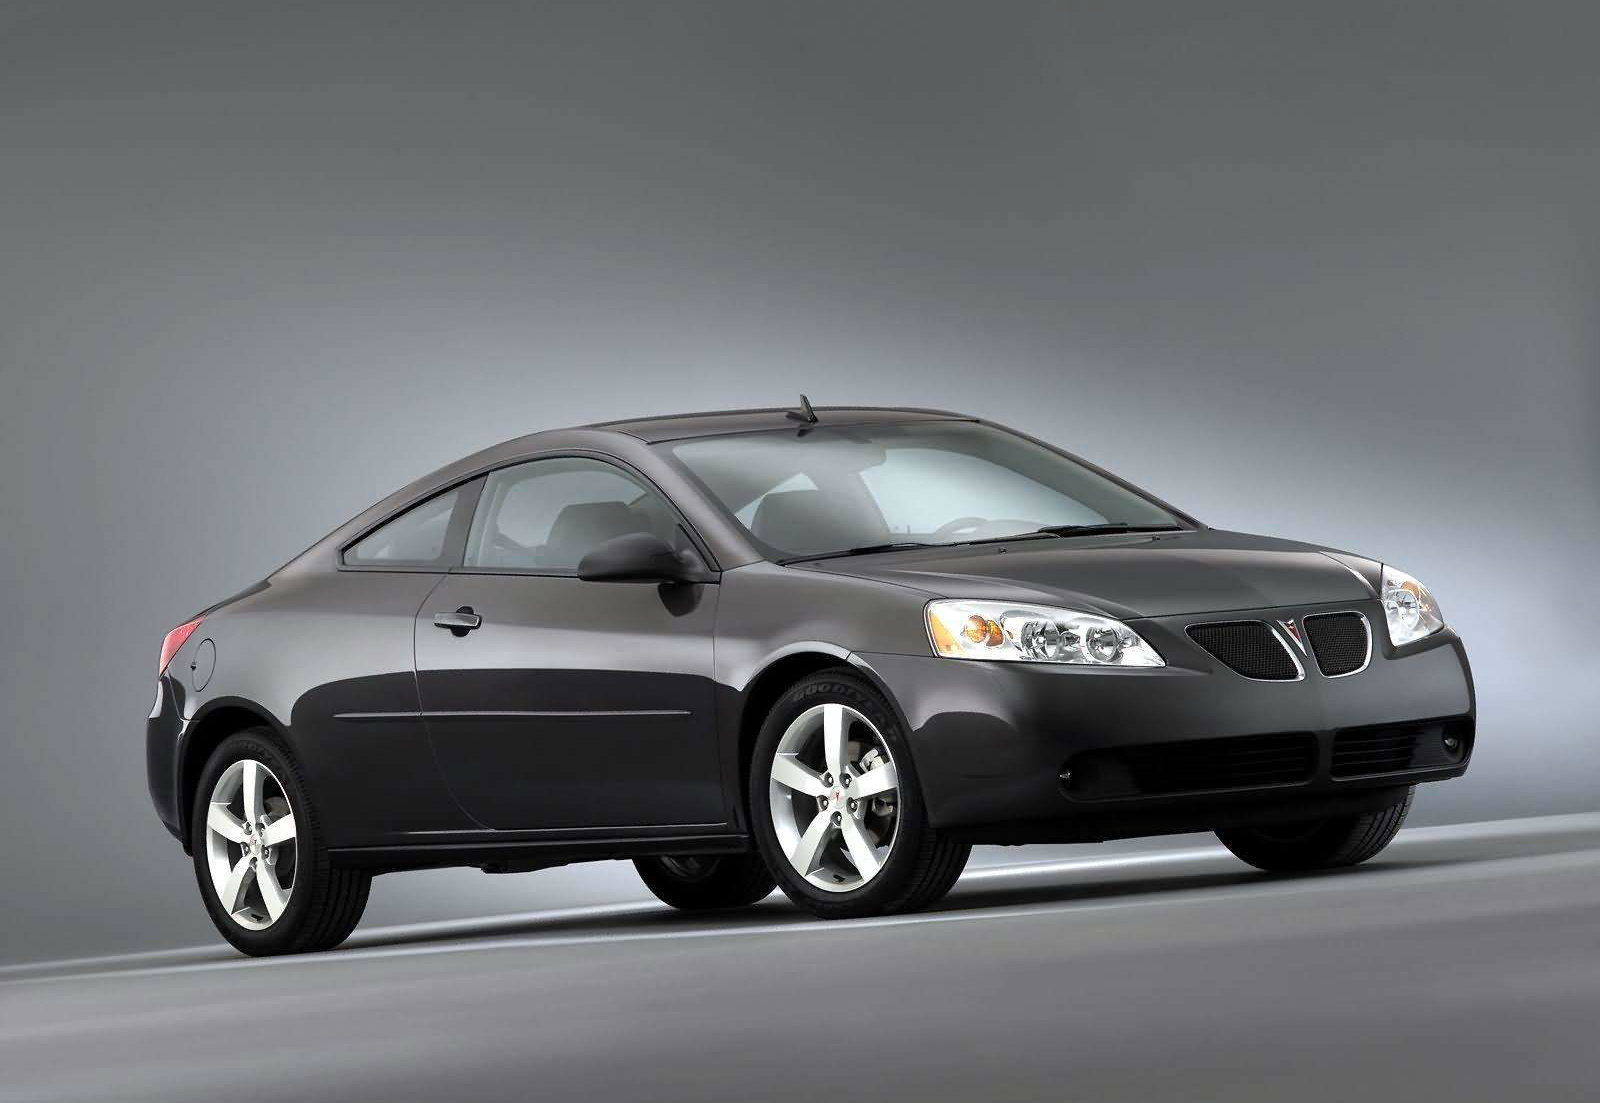 general motors recall saga continues pontiac g6 and. Cars Review. Best American Auto & Cars Review